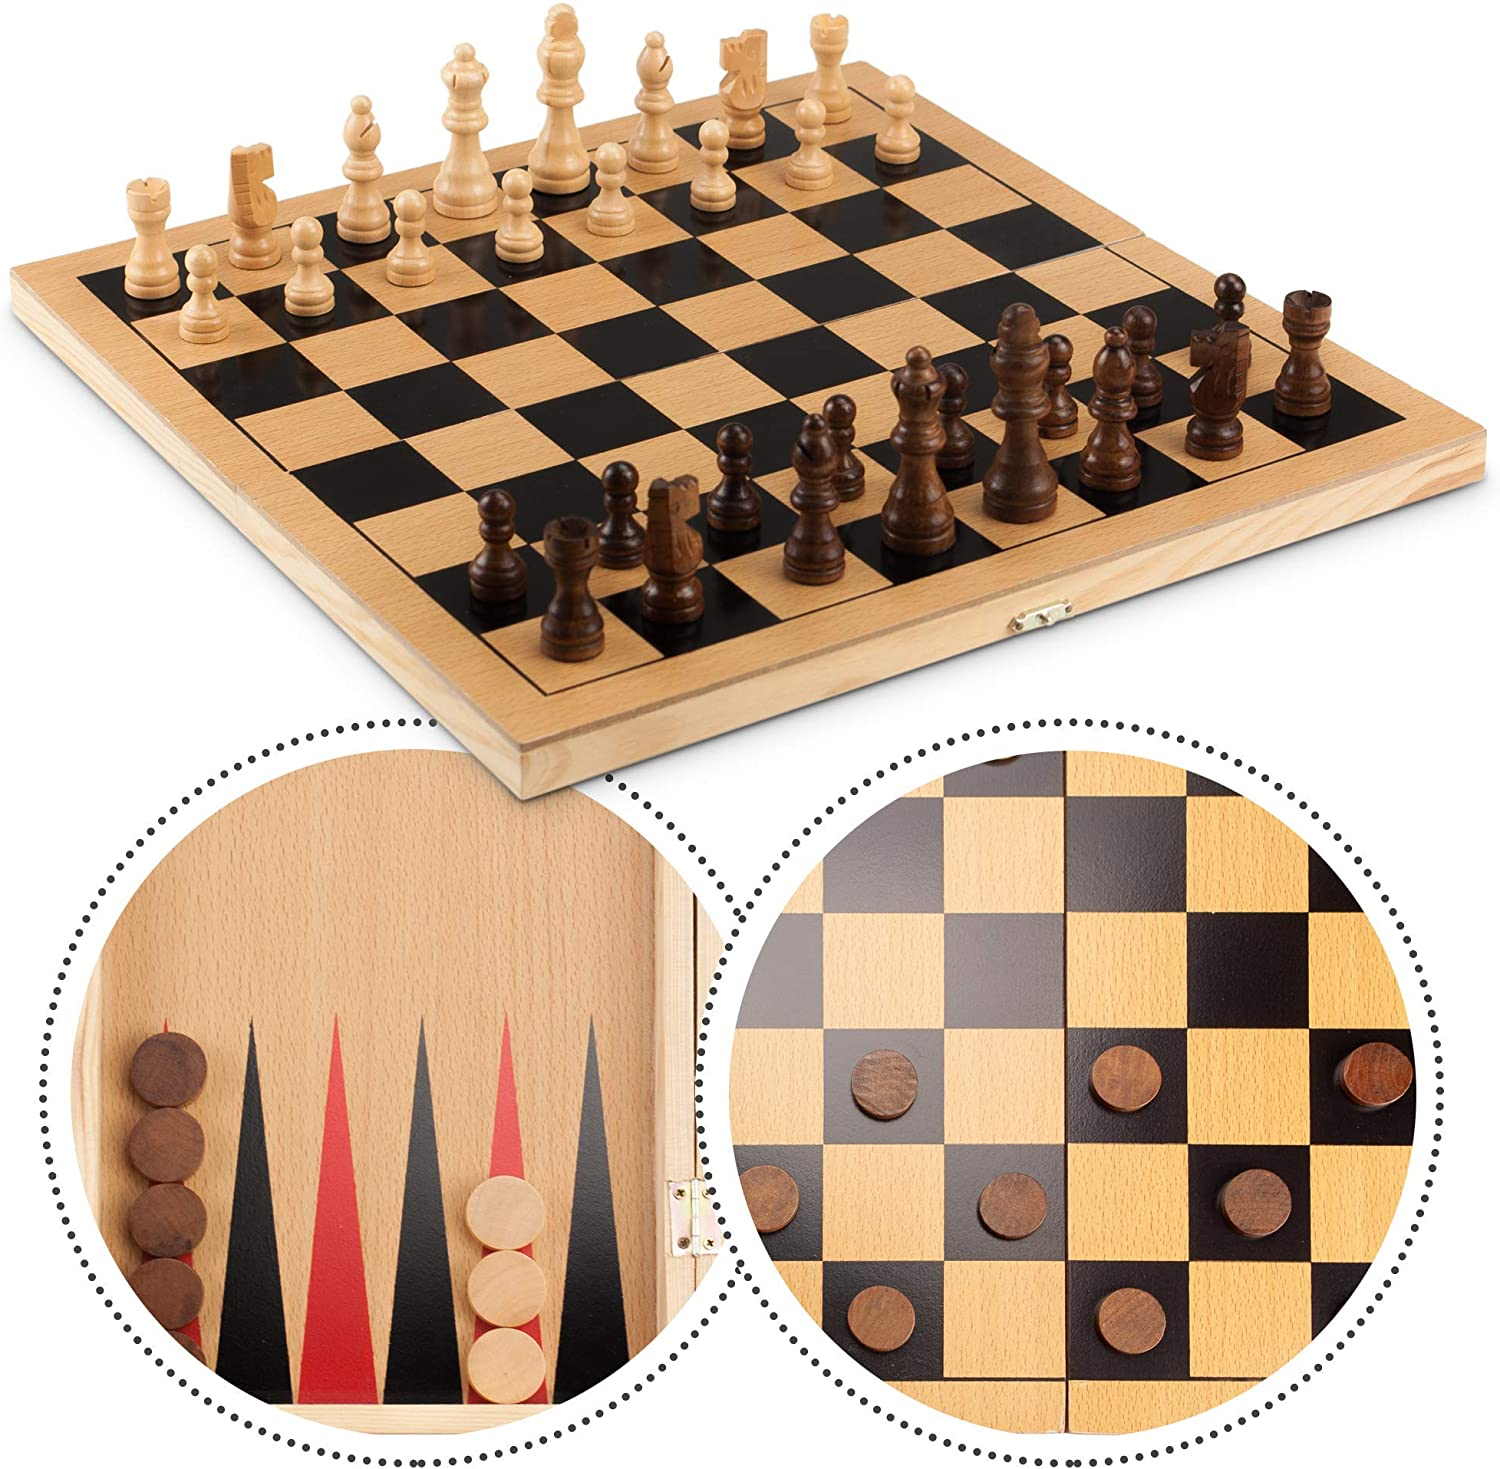 3in1 Large FOLDING WOODEN CHESS SET Board Game Checkers Backgammon Draughts Toy